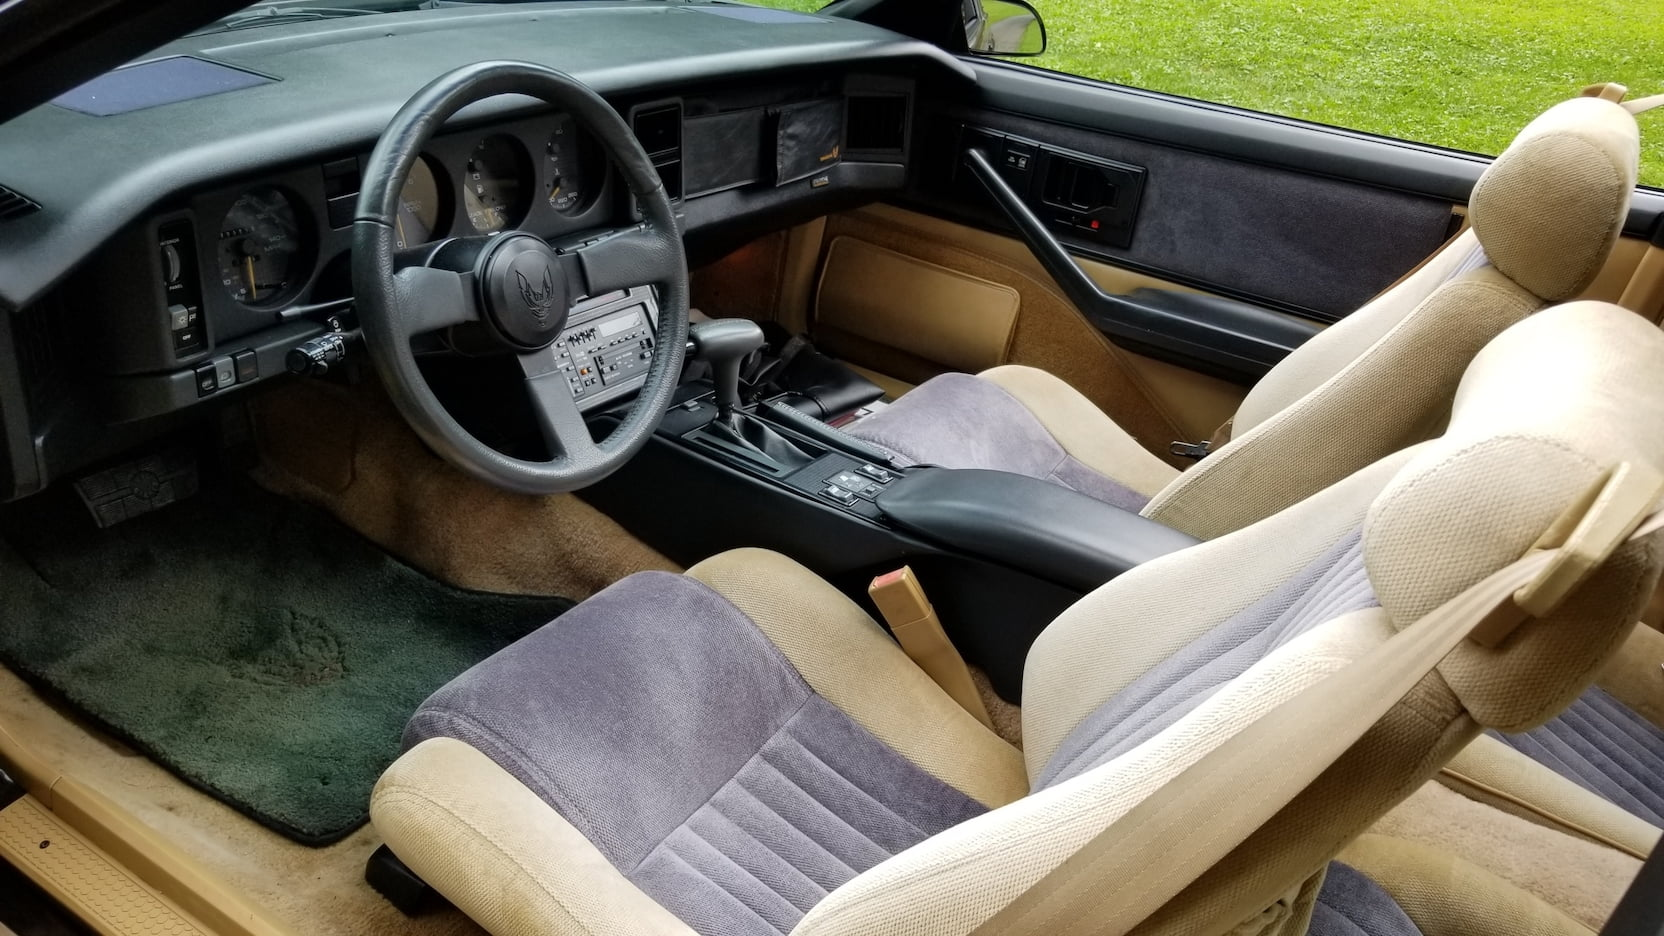 1986 Pontiac Trans Am interior